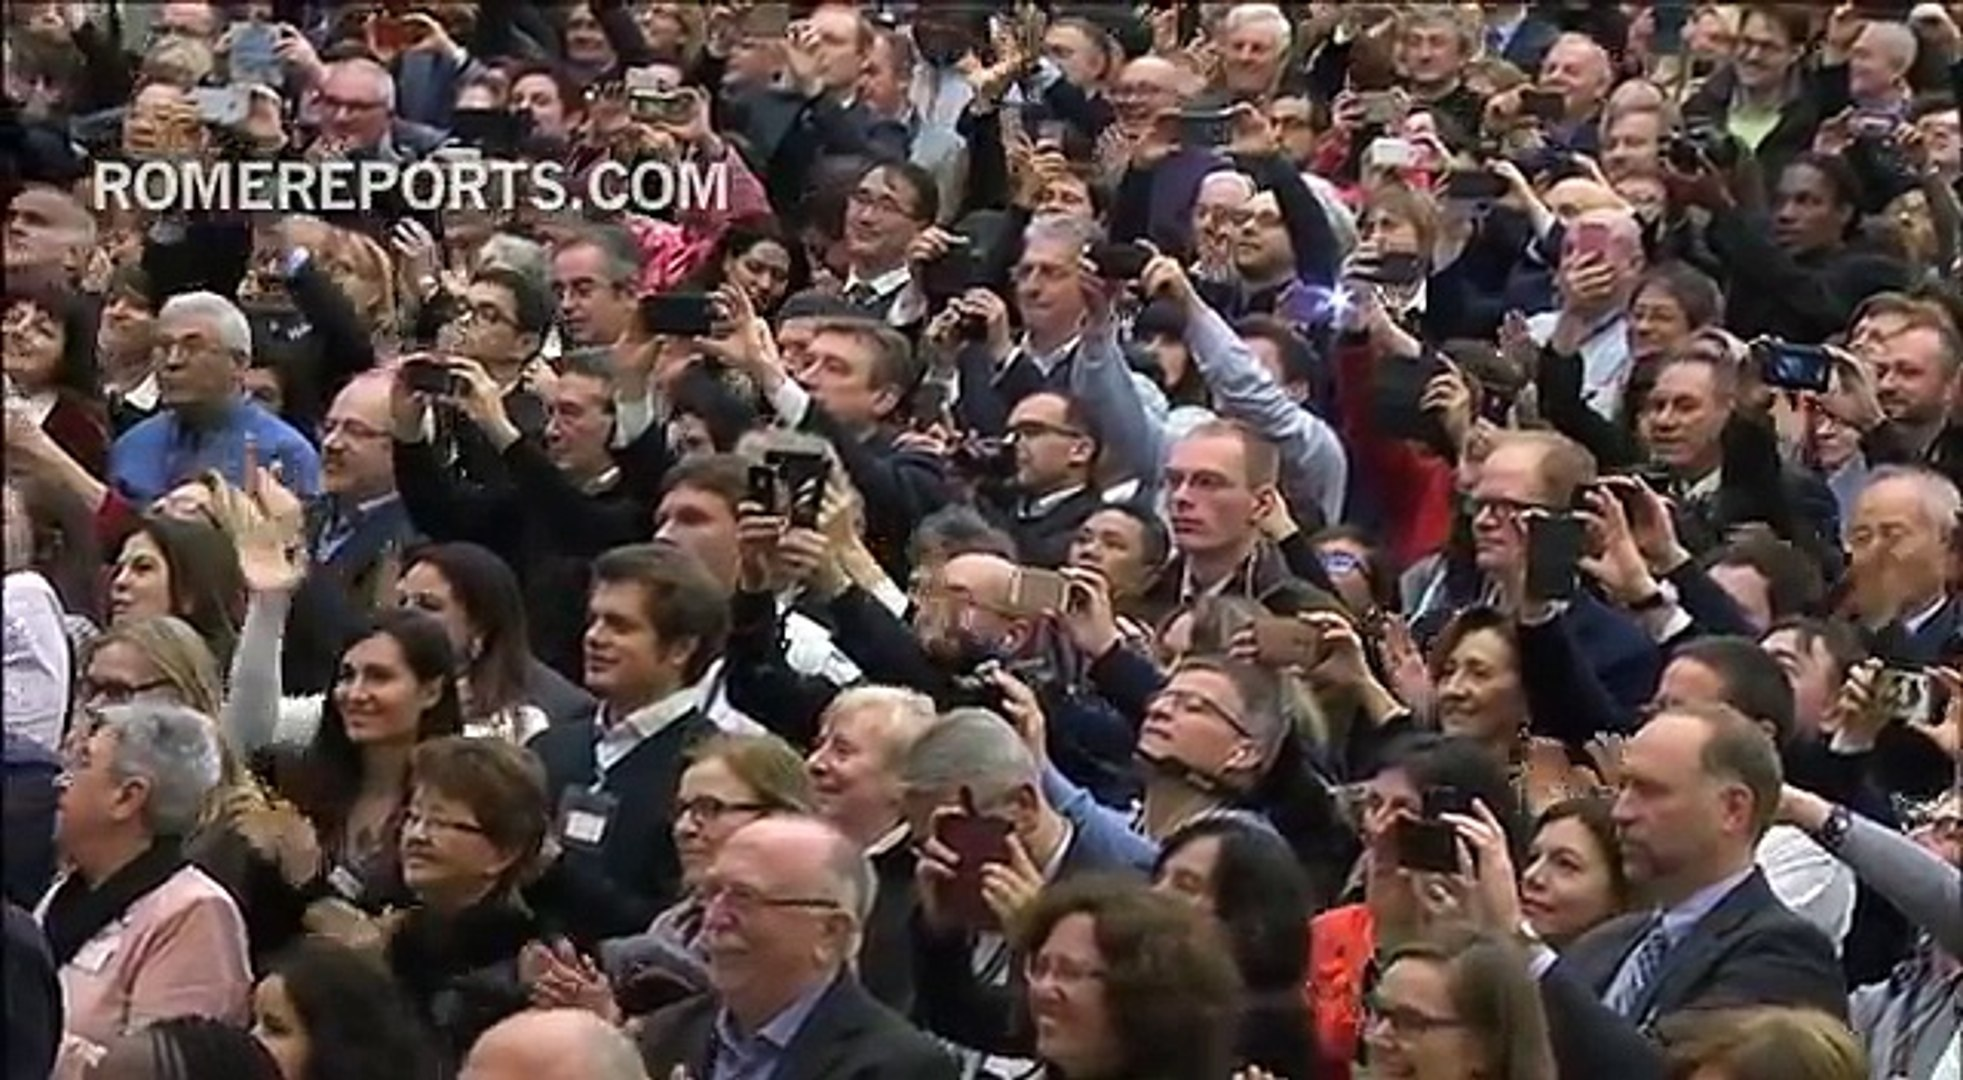 February 2017: the pope visits the University of Rome and goes to the Anglican parish